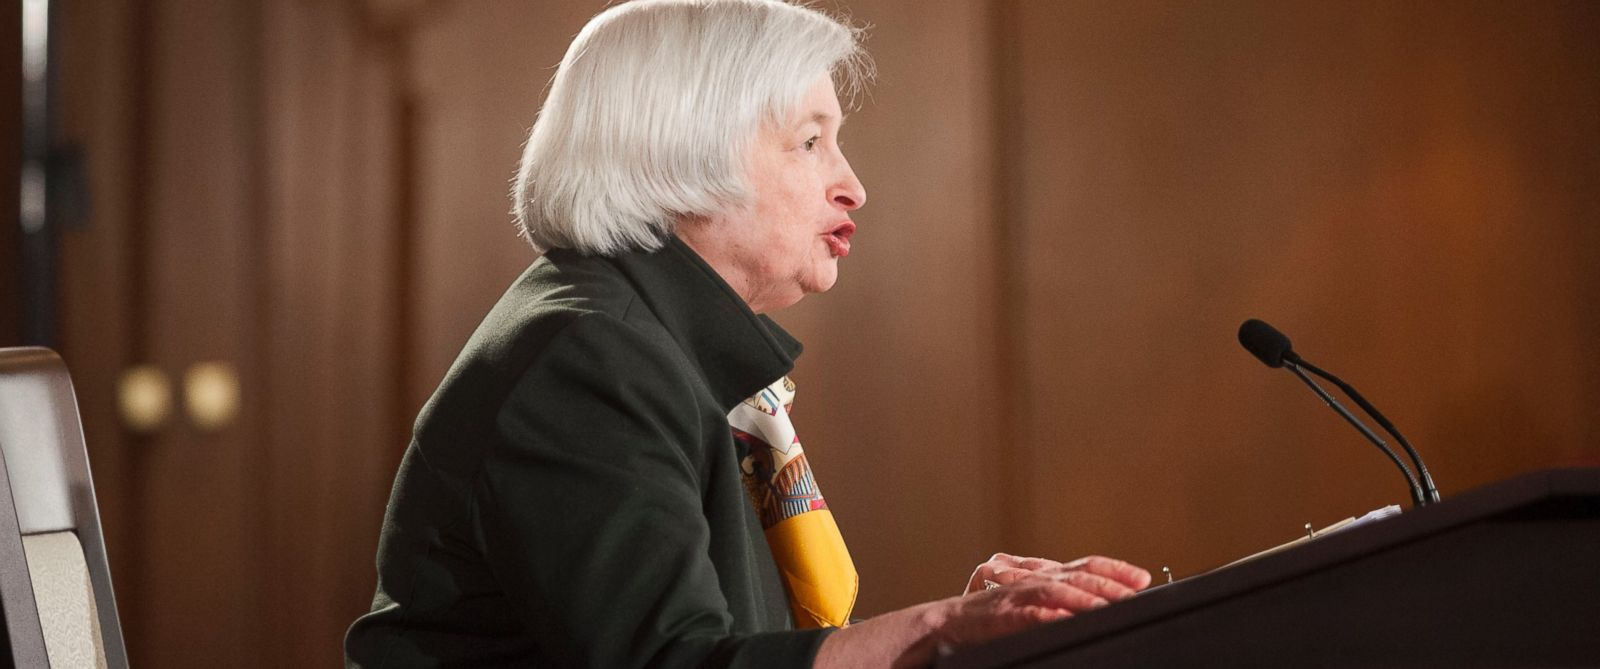 PHOTO: Federal Reserve Chair Janet Yellen speaks during a news conference at the end of the Federal Open Market Committee meeting, March 18, 2015 in Washington.